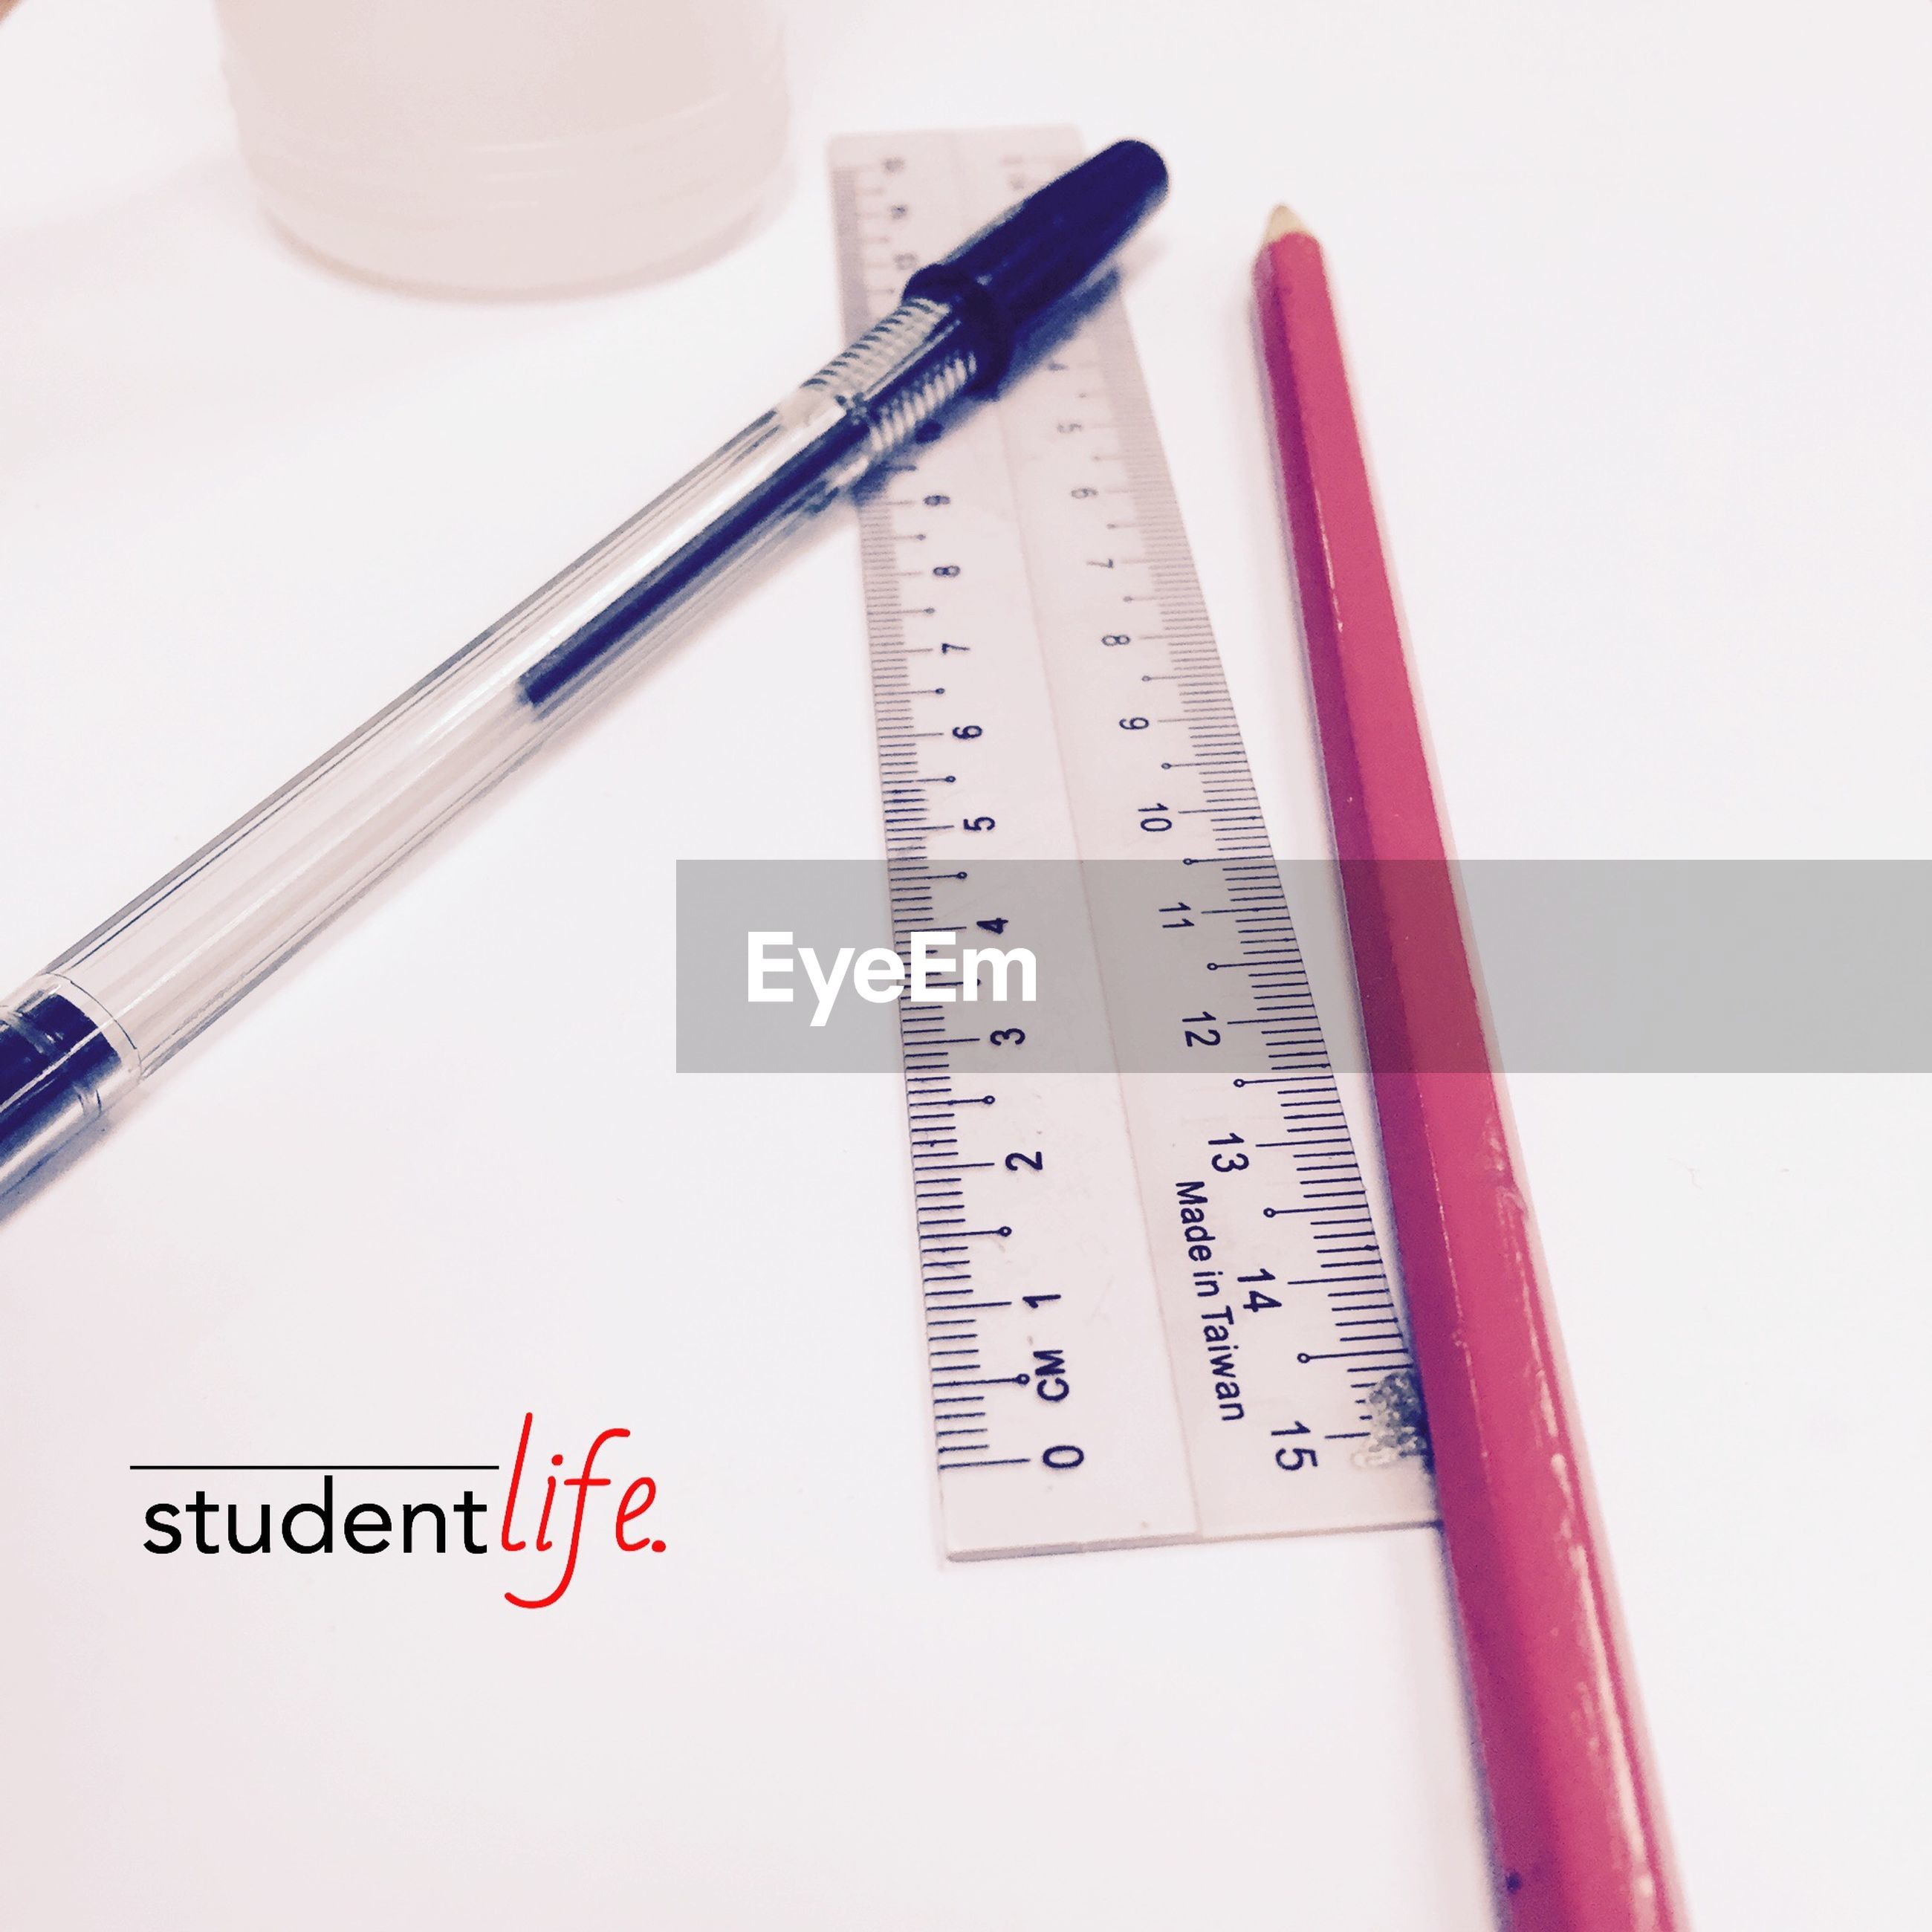 indoors, text, communication, still life, white background, western script, close-up, studio shot, pen, paper, education, no people, pencil, number, high angle view, book, table, equipment, white color, variation